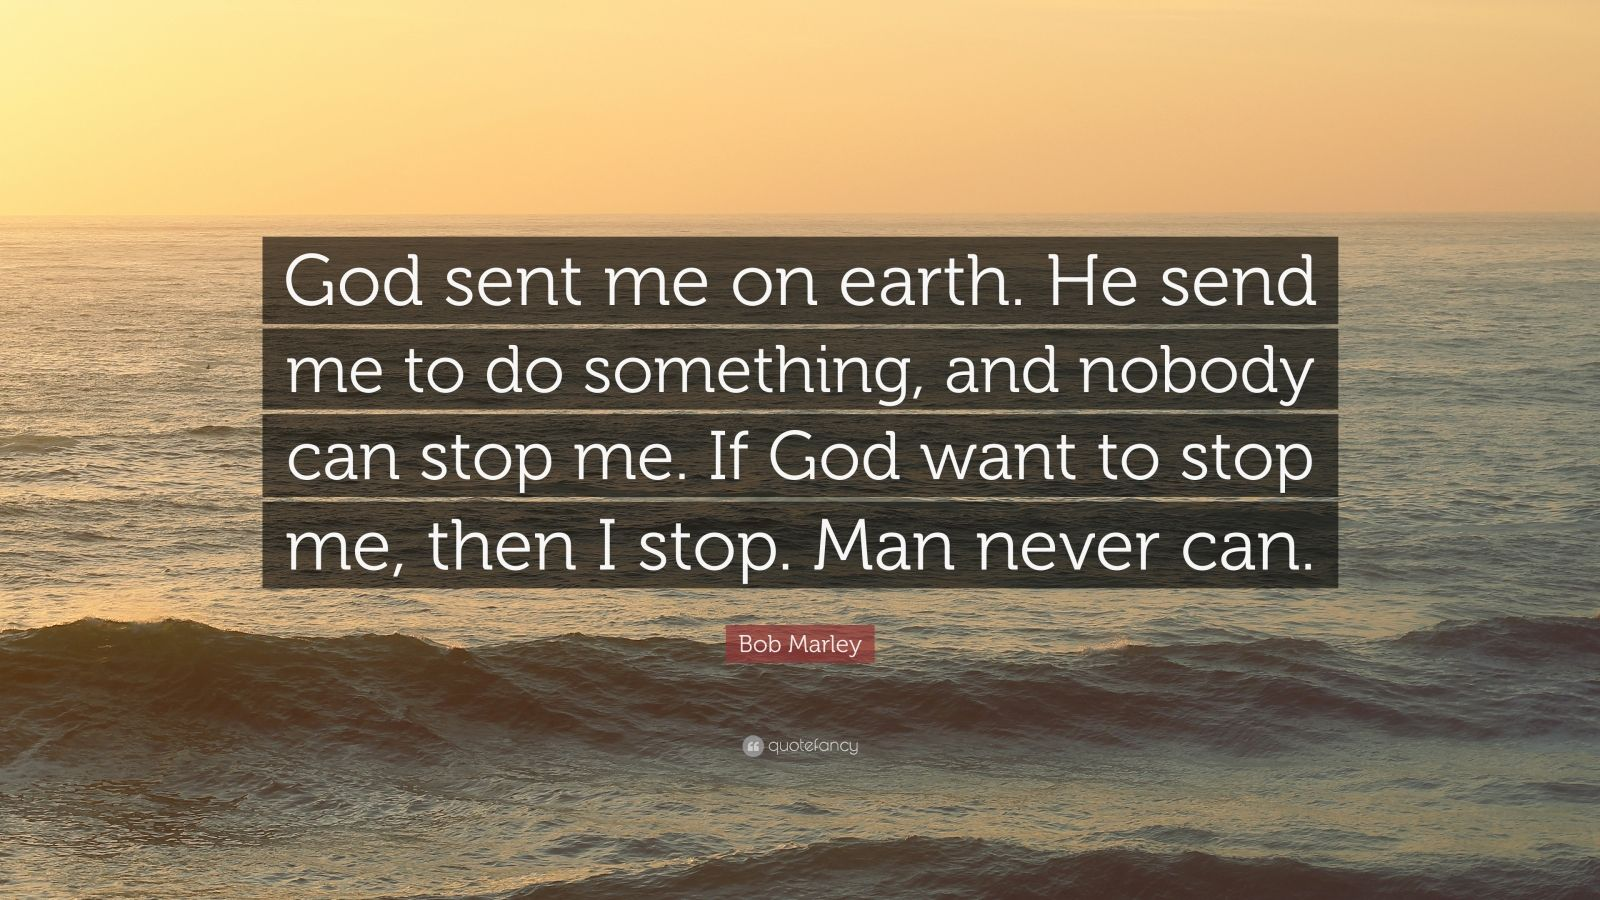 Bob Marley Quote: God sent me on earth. He send me to do